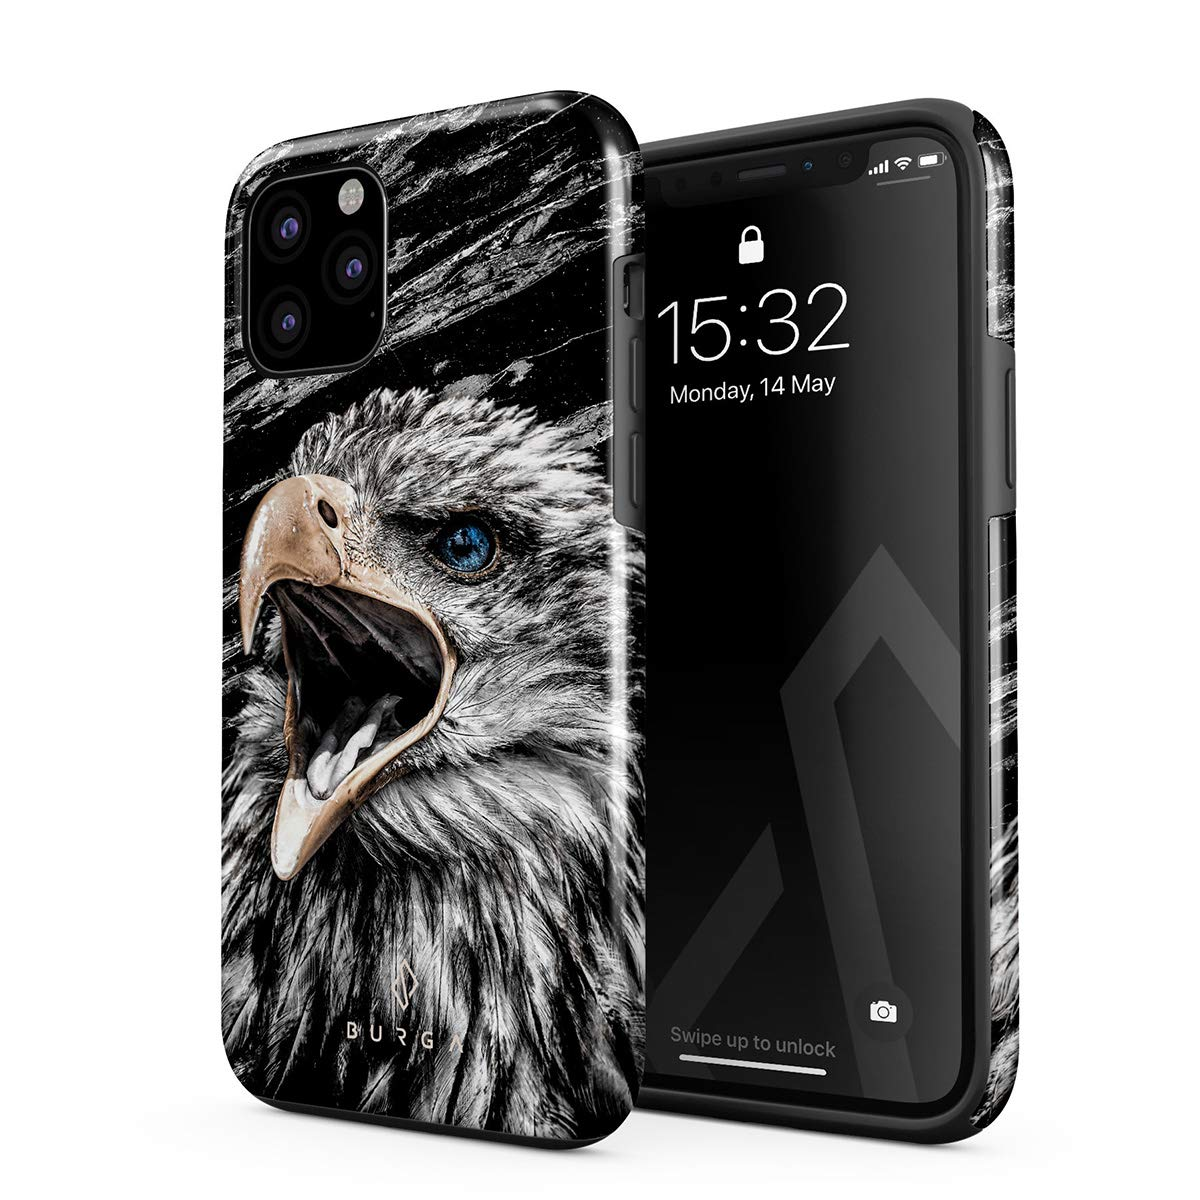 BURGA Phone Case Compatible with iPhone 11 PRO MAX - Bird of JOVE Savage Wild Eagle Cute Case for Girls Heavy Duty Shockproof Dual Layer Hard Shell + Silicone Protective Cover